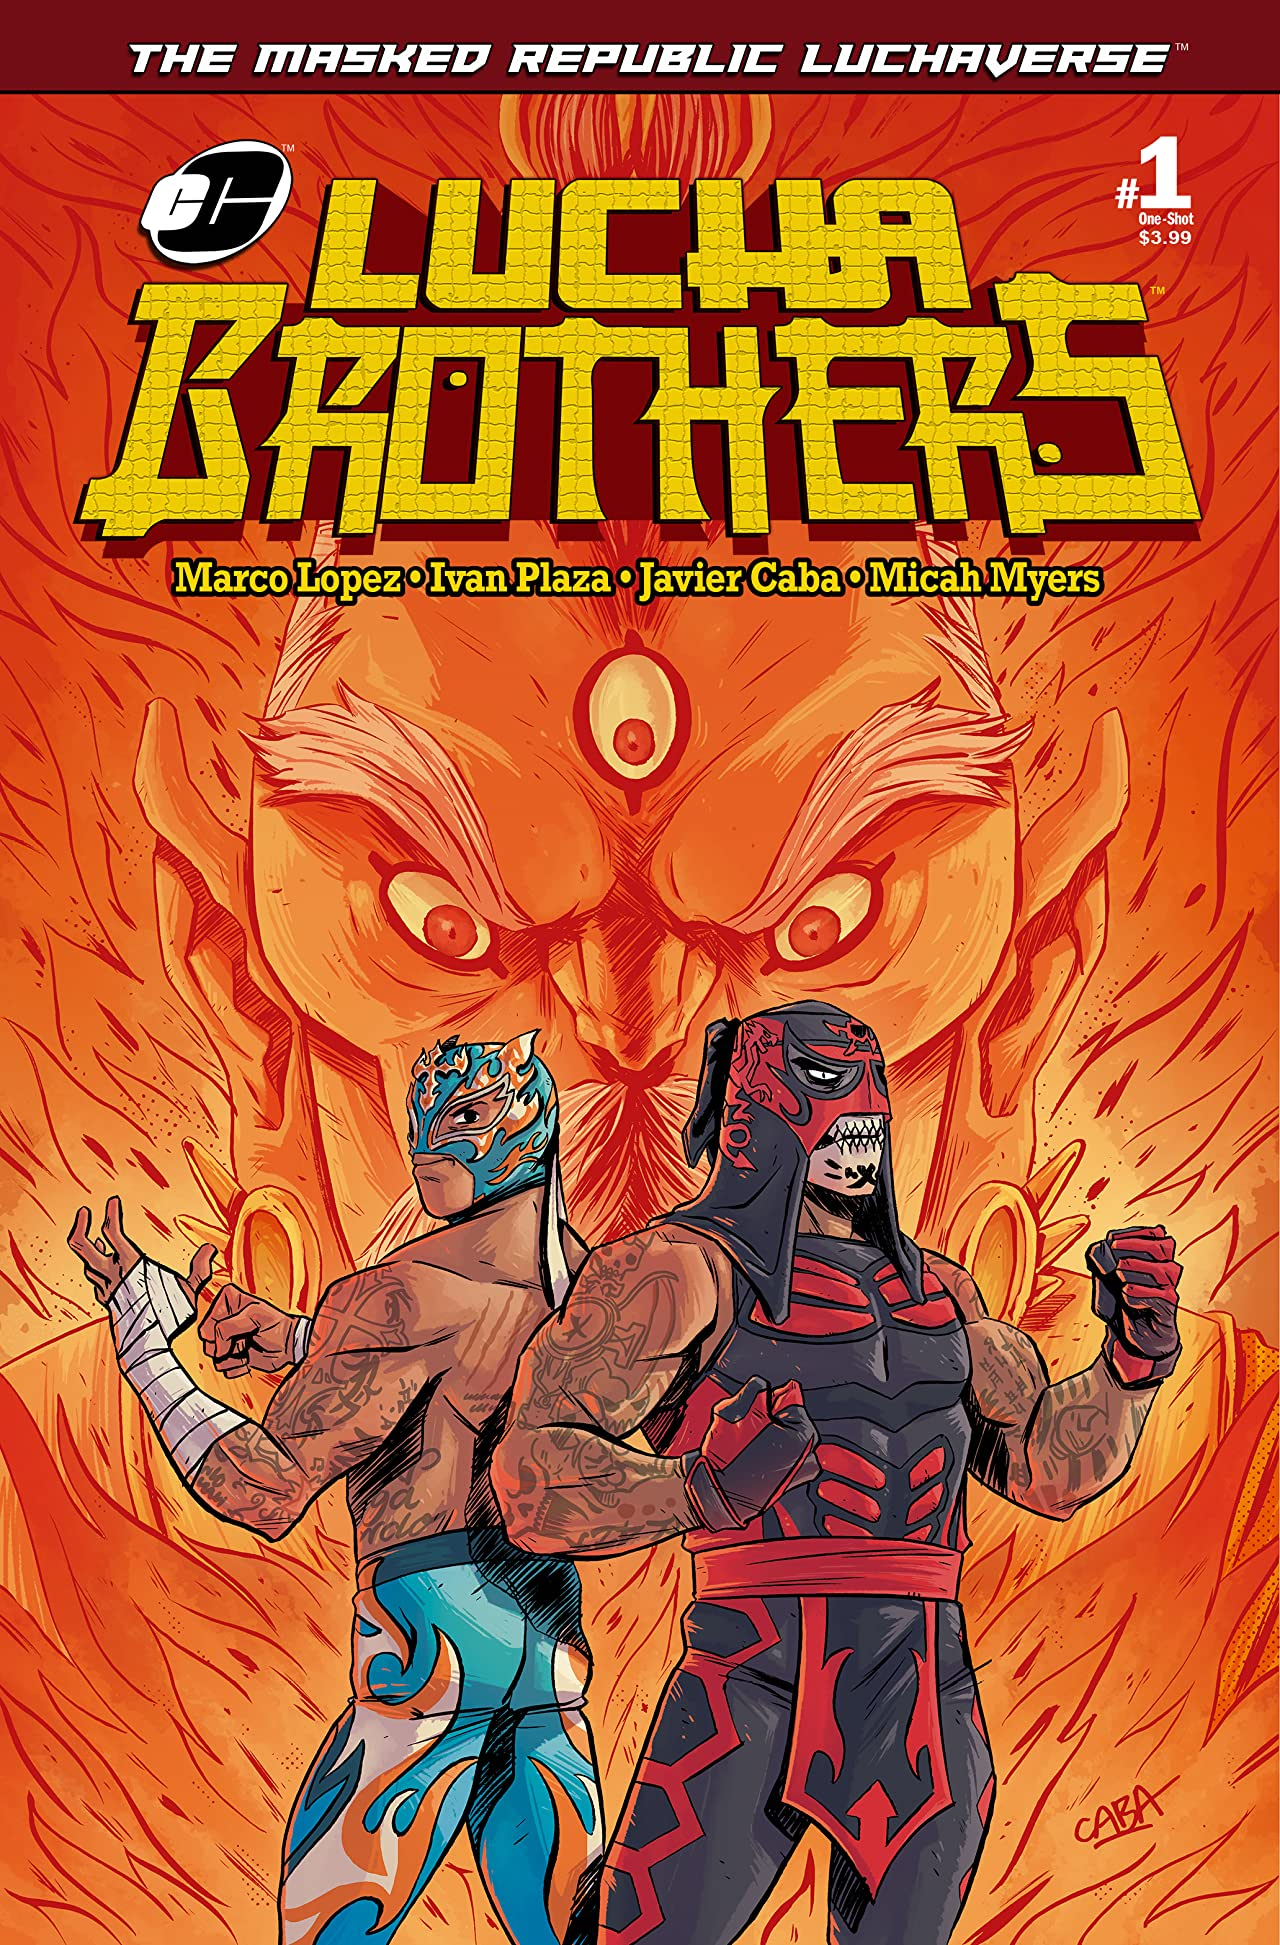 Masked Republic Luchaverse: Lucha Brothers #1